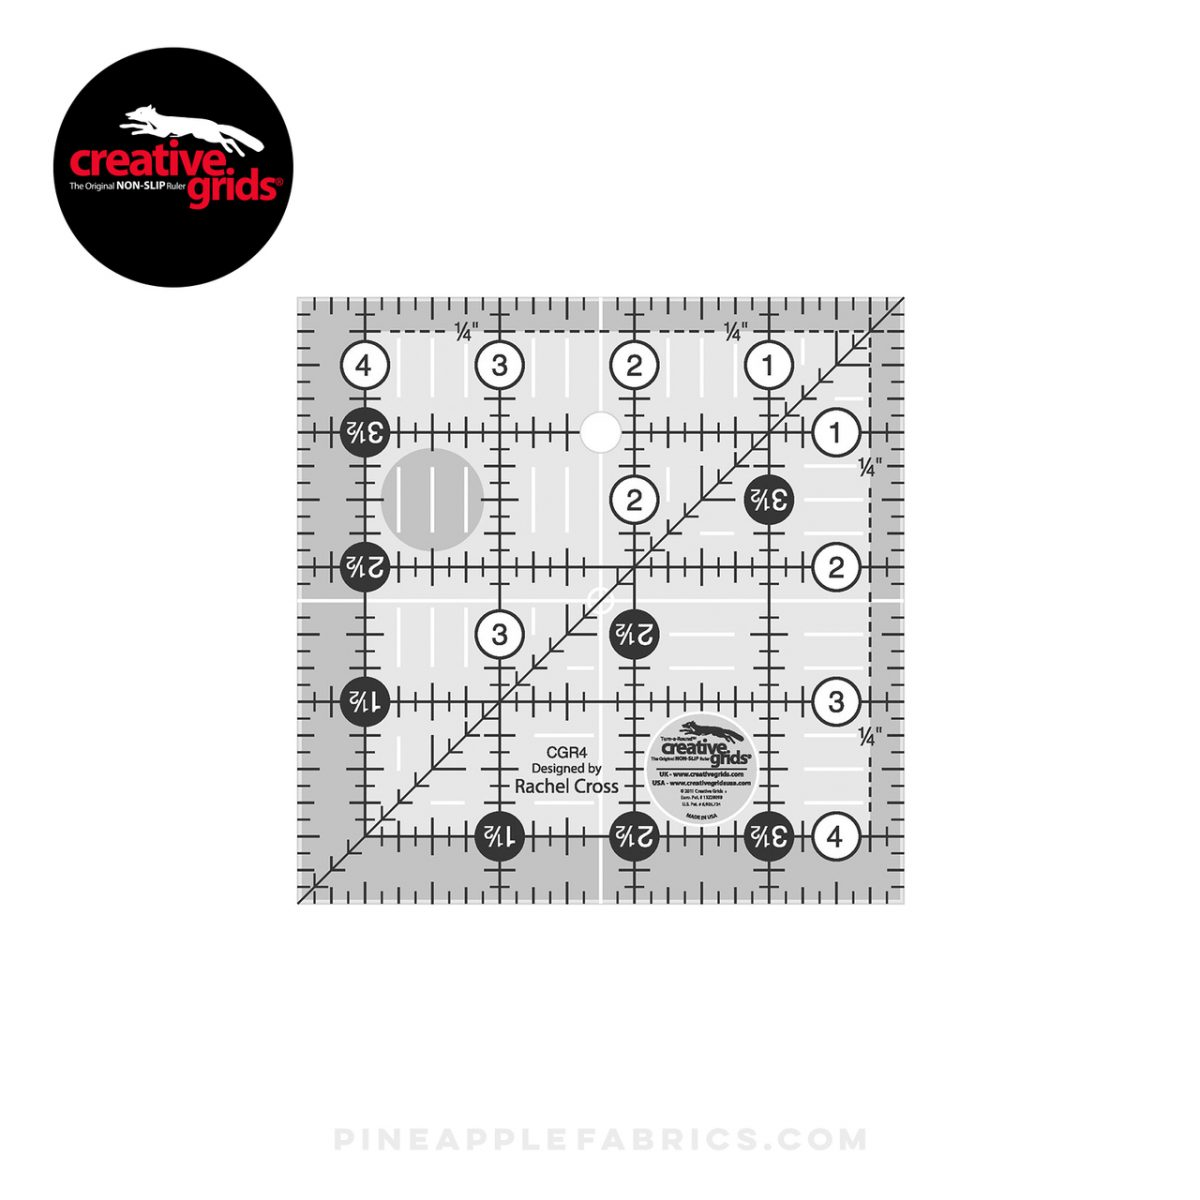 CGR4 - Creative Grids Quilt Ruler 4-1/2in Square